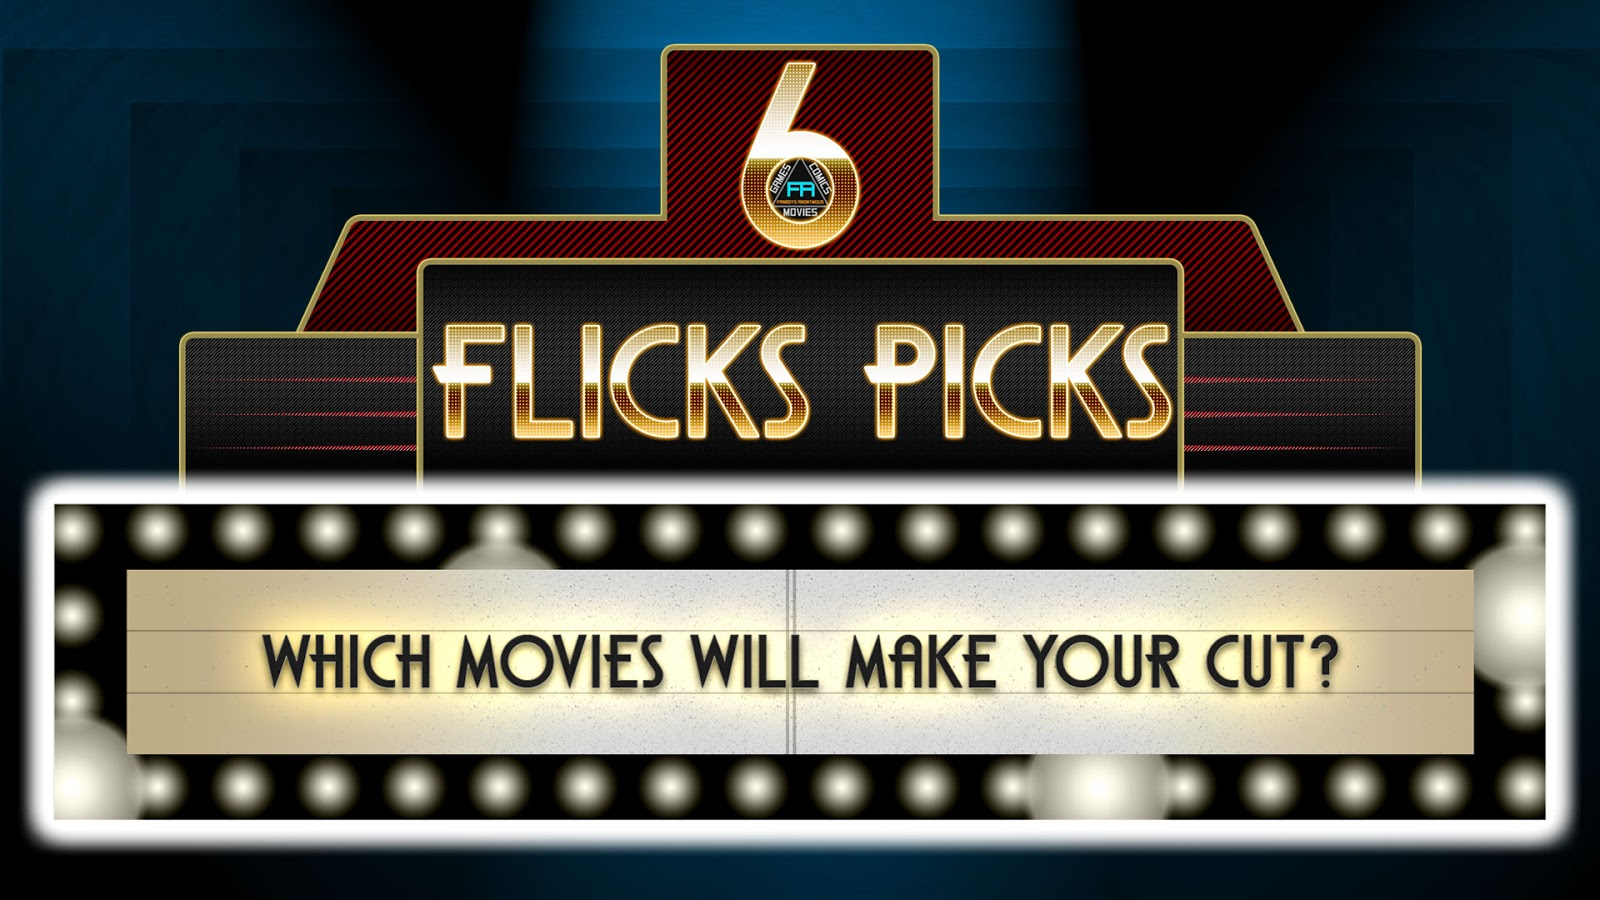 What movies are coming out 2018 6 Flicks Picks